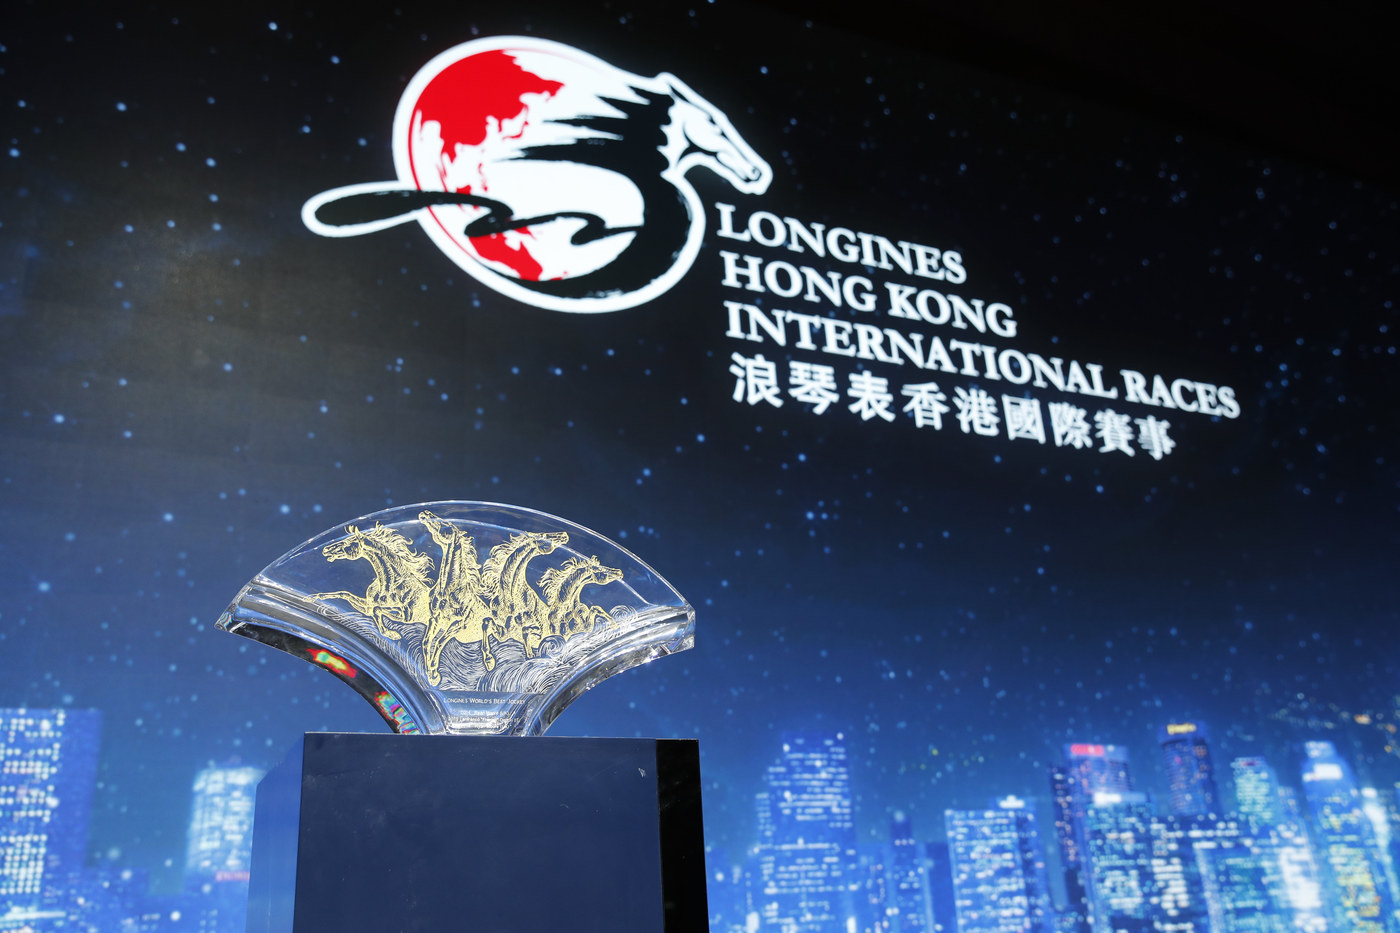 Longines Flat Racing Event: Australian Hugh Bowman receives the 2017 Longines World's Best Jockey Award in Hong Kong 3